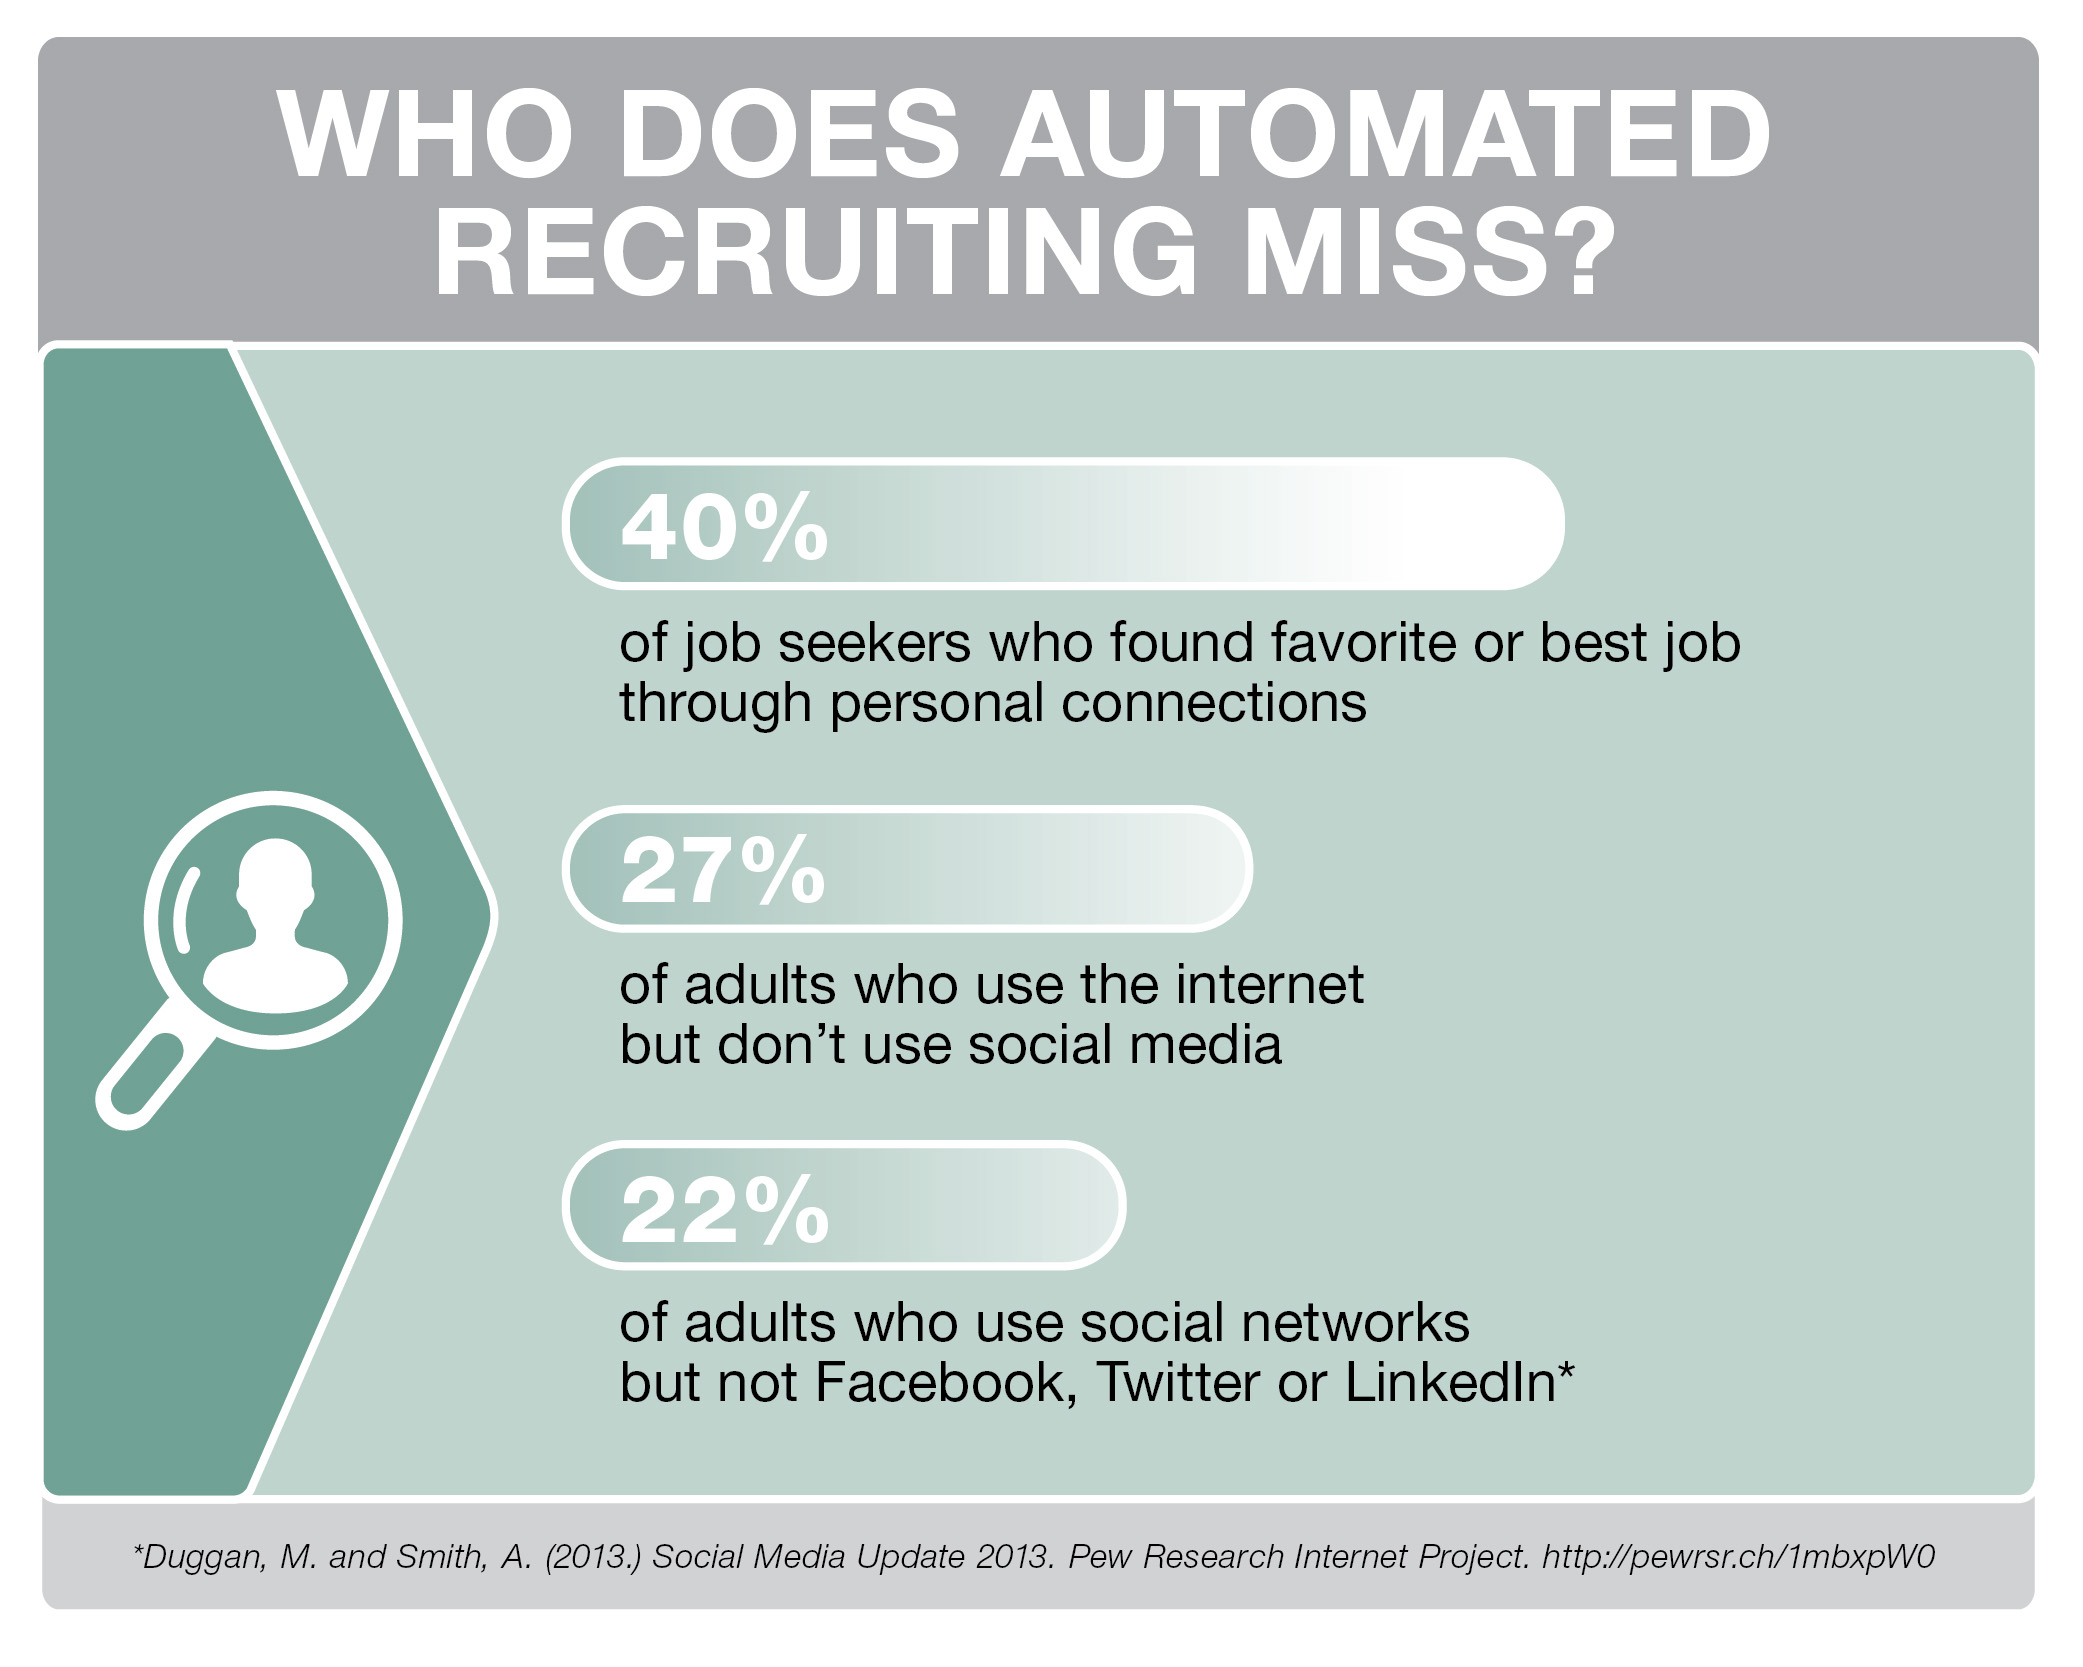 Talent is slipping through the cracks of automated recruiting, warns @MPGrpSolutions in the latest report on the importance of high-touch when attracting candidates.